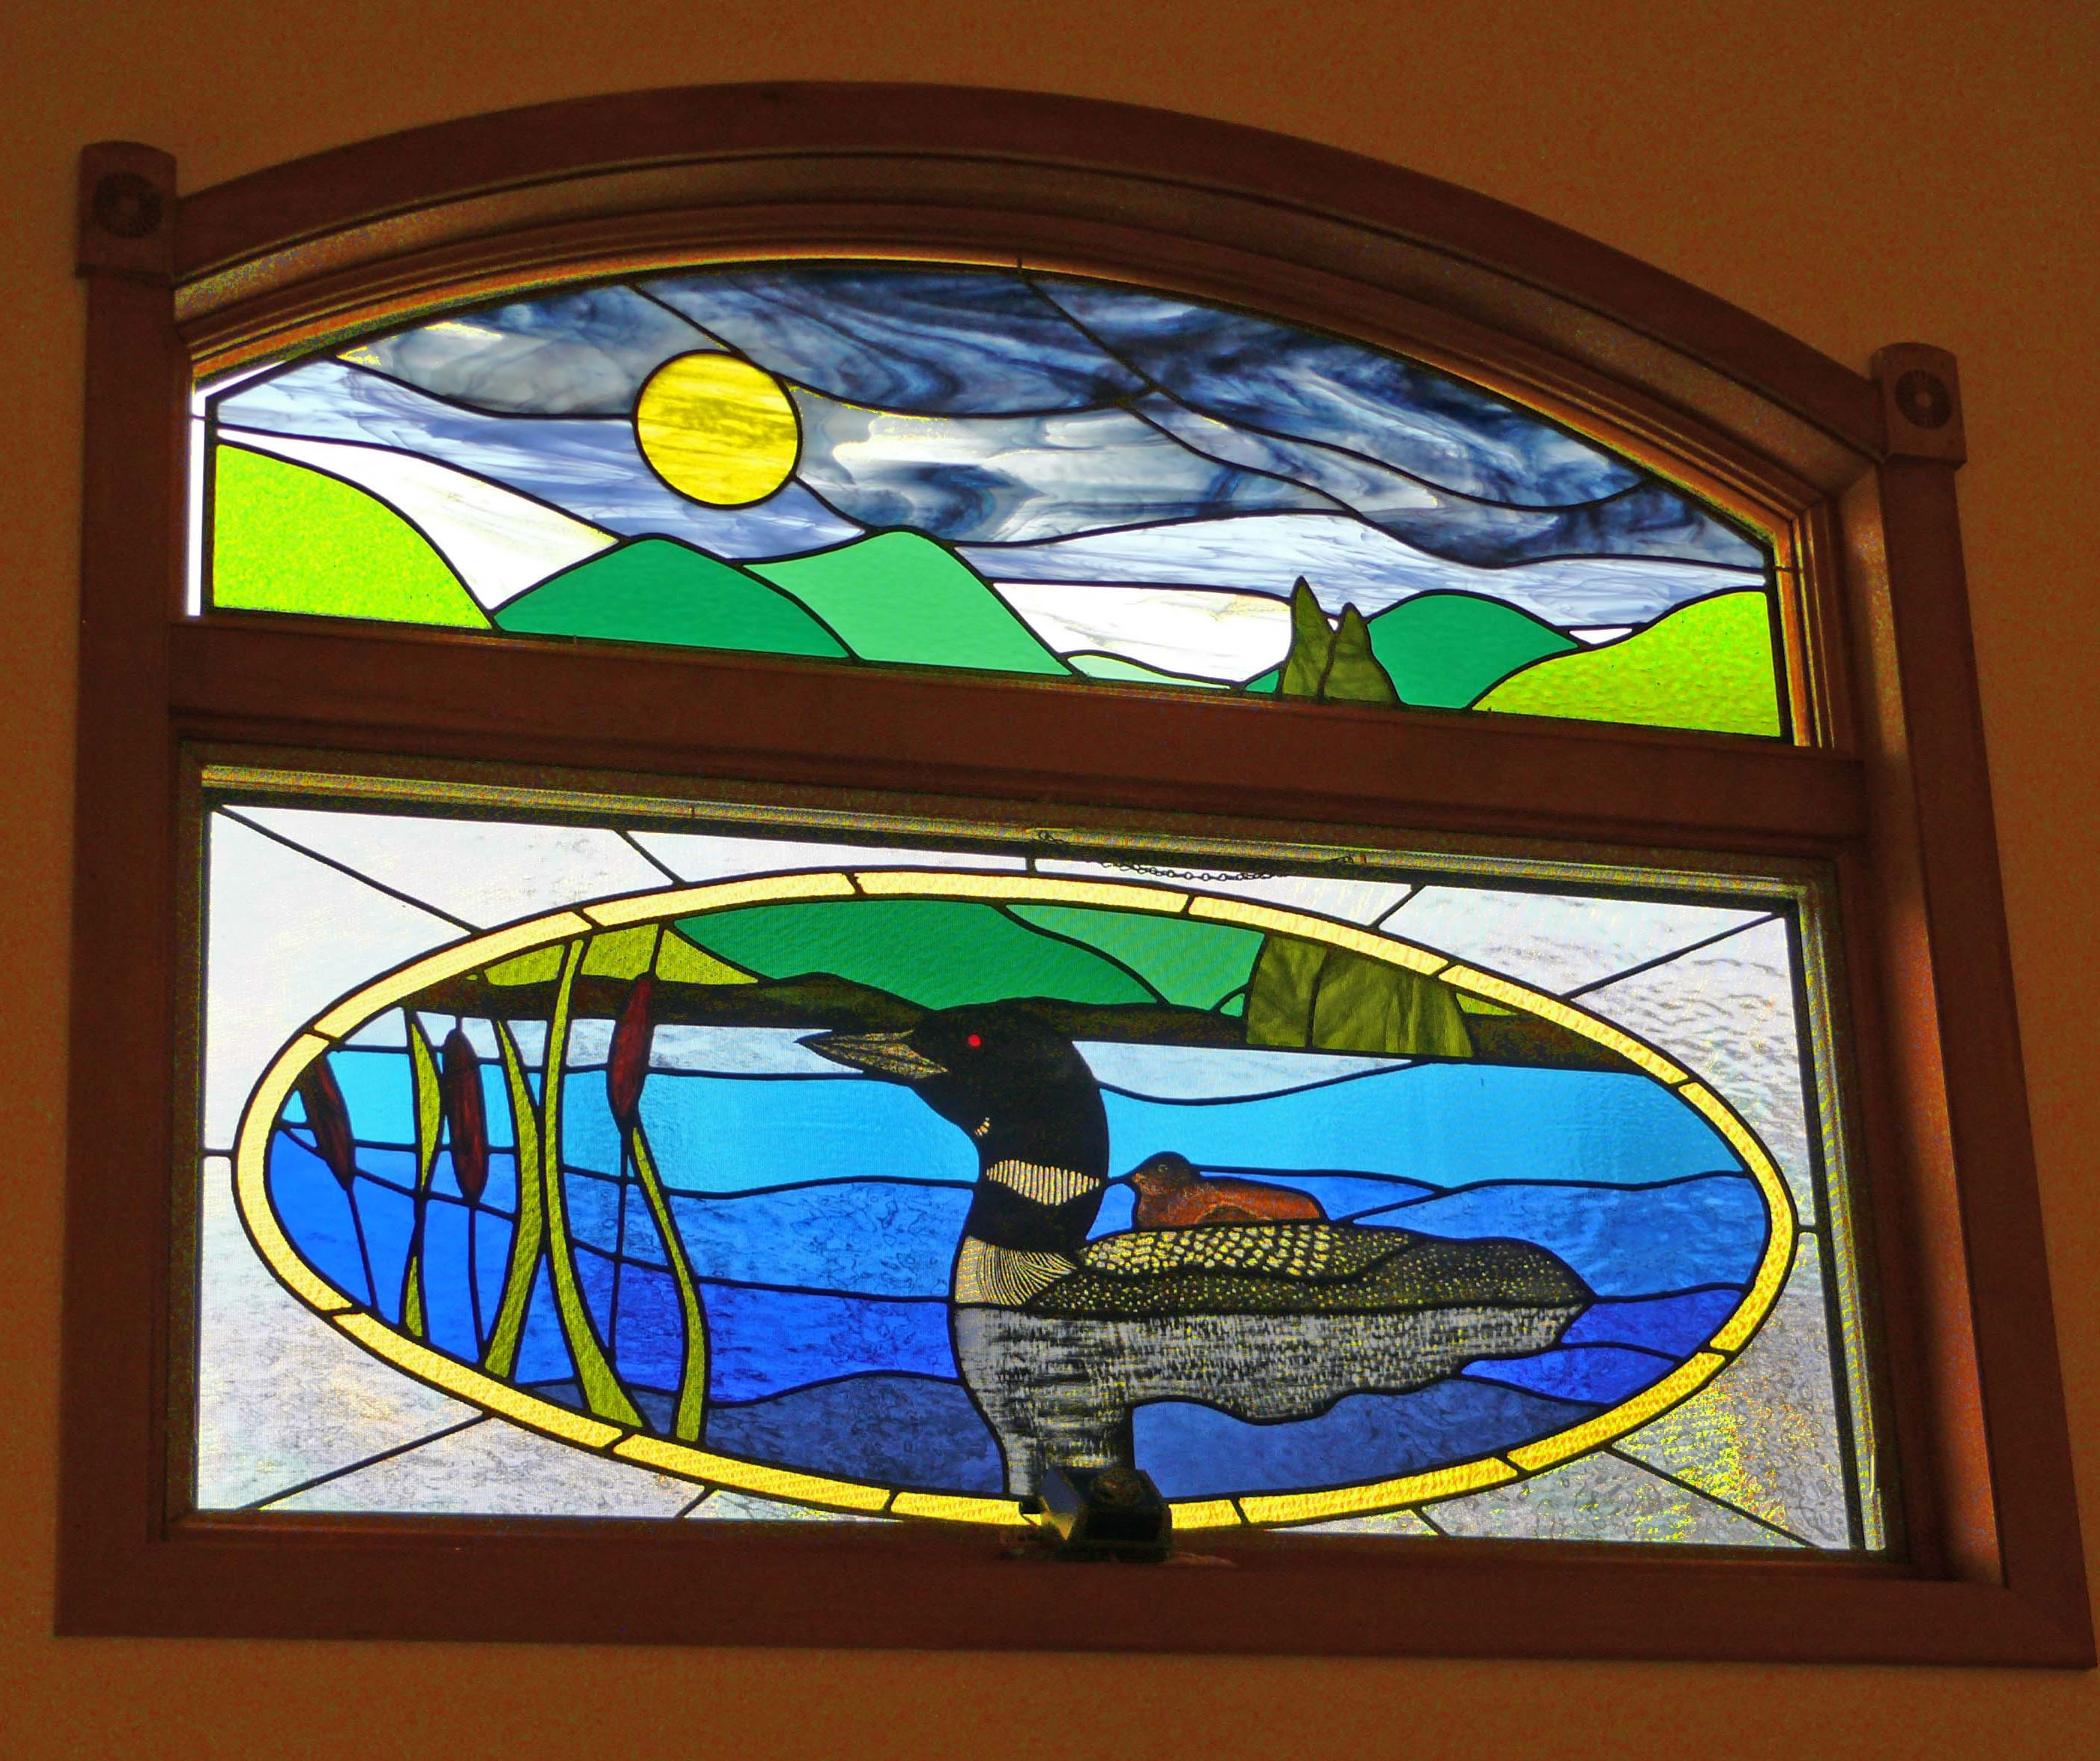 Double window loon and its reflection on the water were hand painted